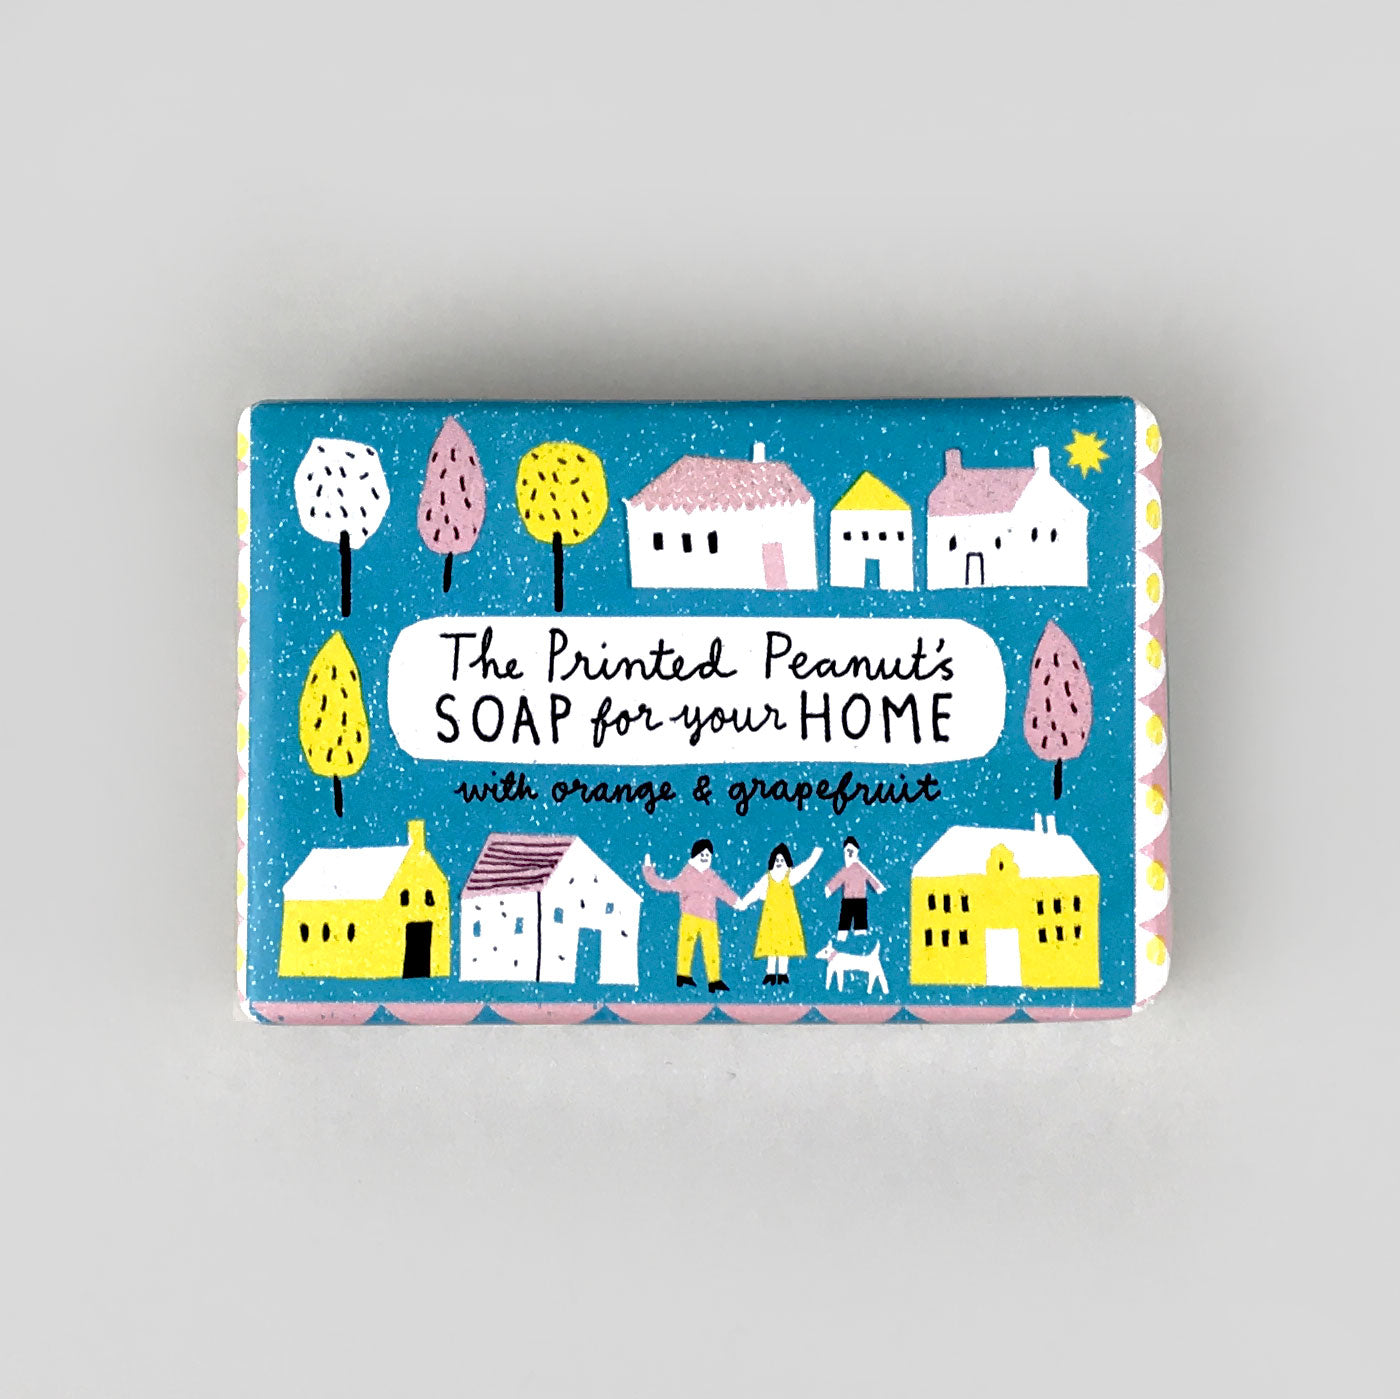 The Printed Peanut Home Soap